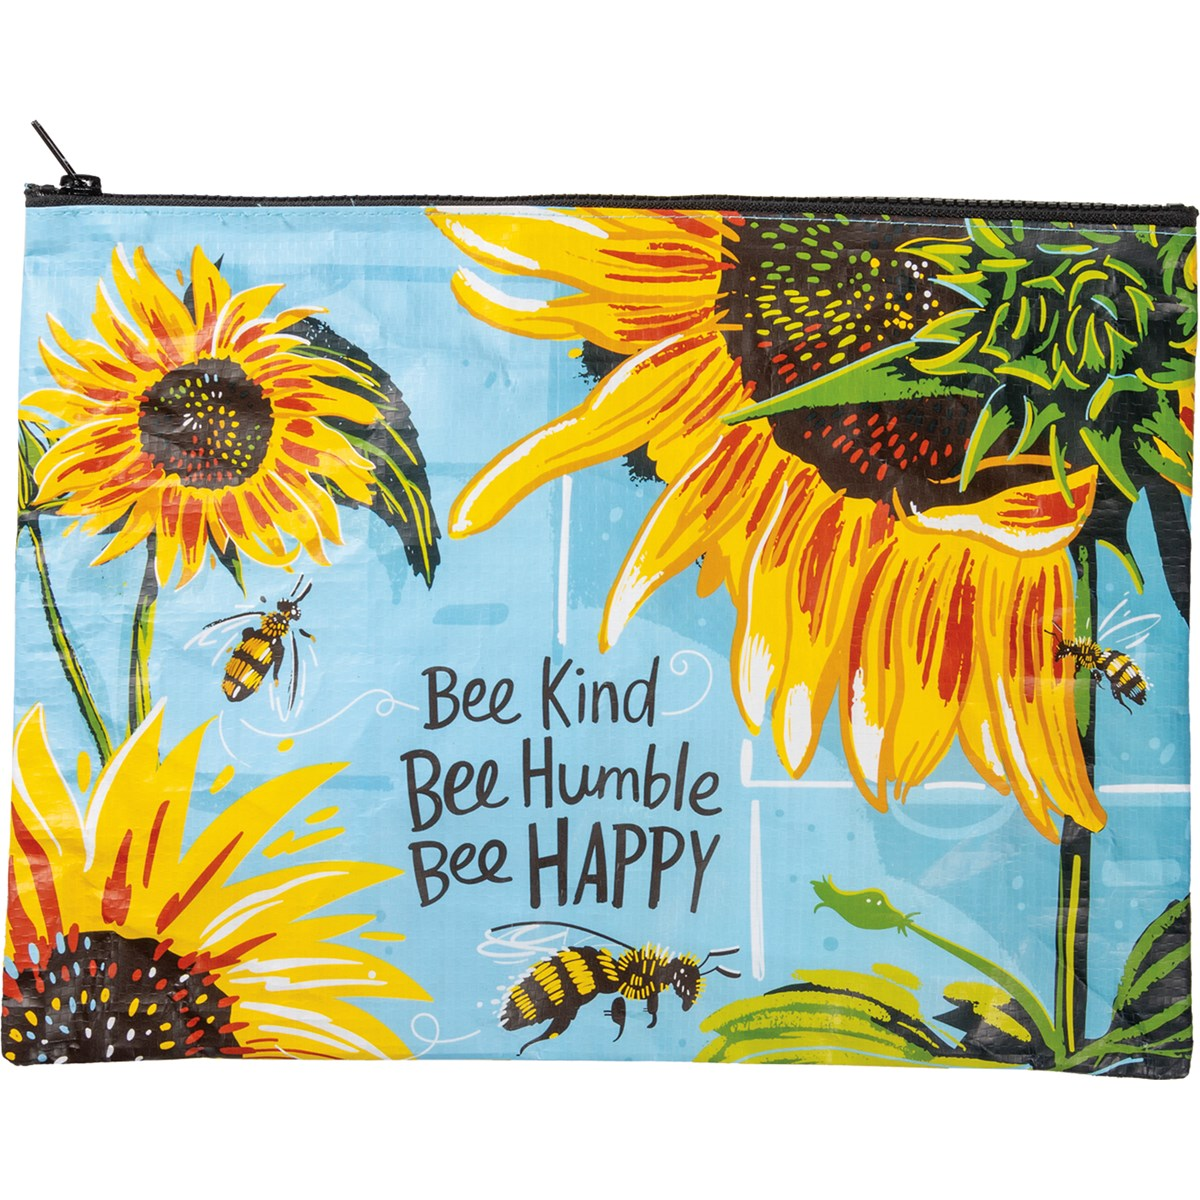 "Zipper Folder - Bee Kind Bee Humble Bee Happy - 14.25"" x 10"" - Post-Consumer Material, Metal"